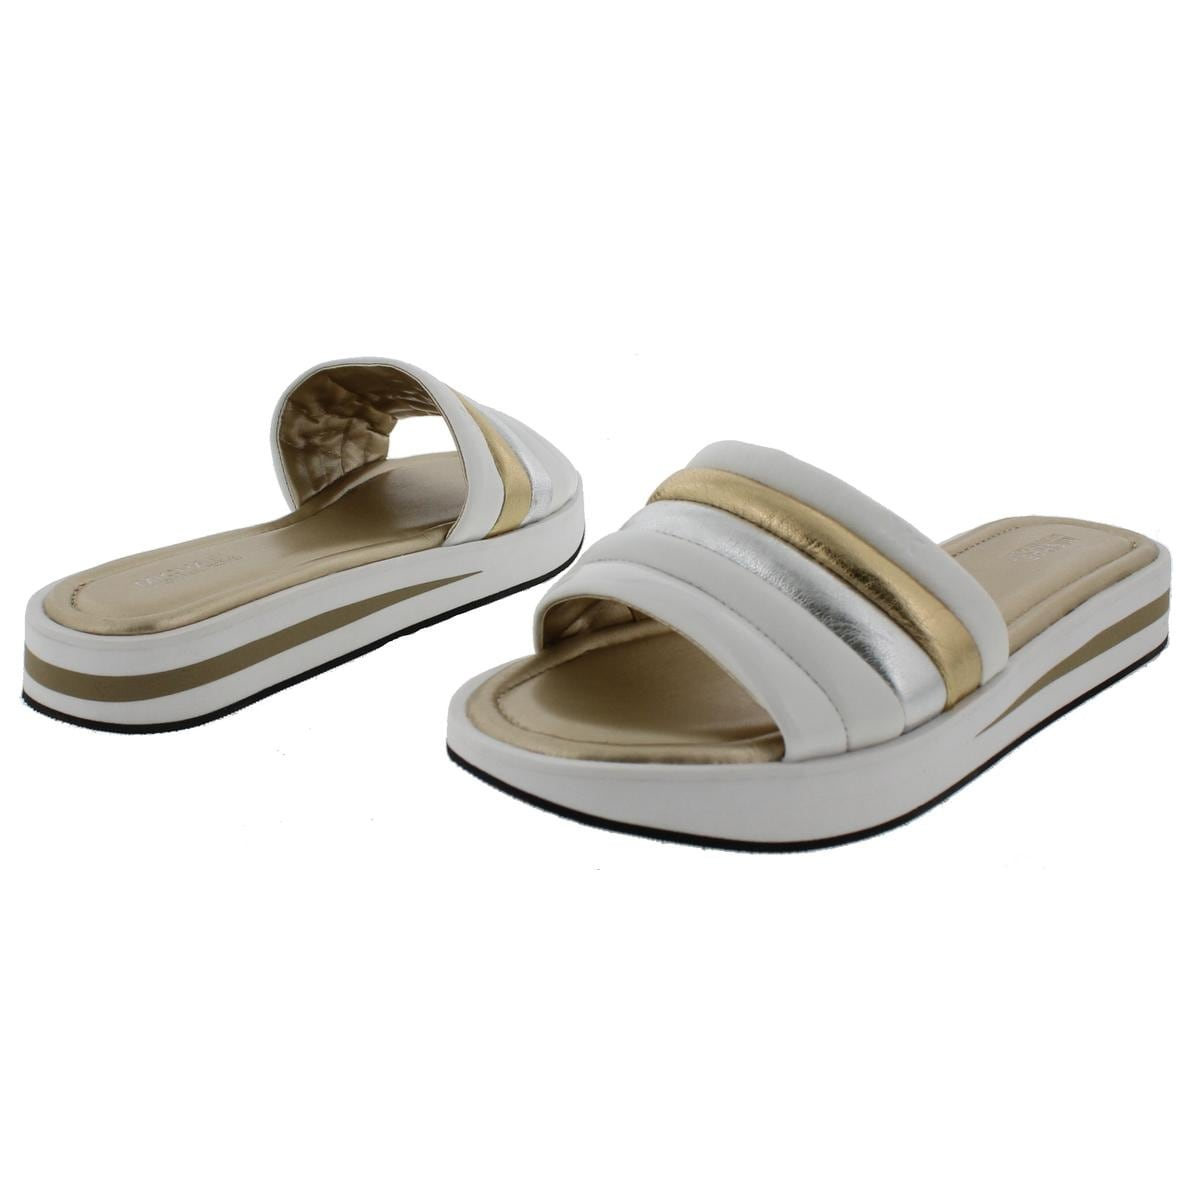 d51b1551cded Shop MICHAEL Michael Kors Womens Conrad Slide Slide Sandals Metallic  Platform - 10 medium (b